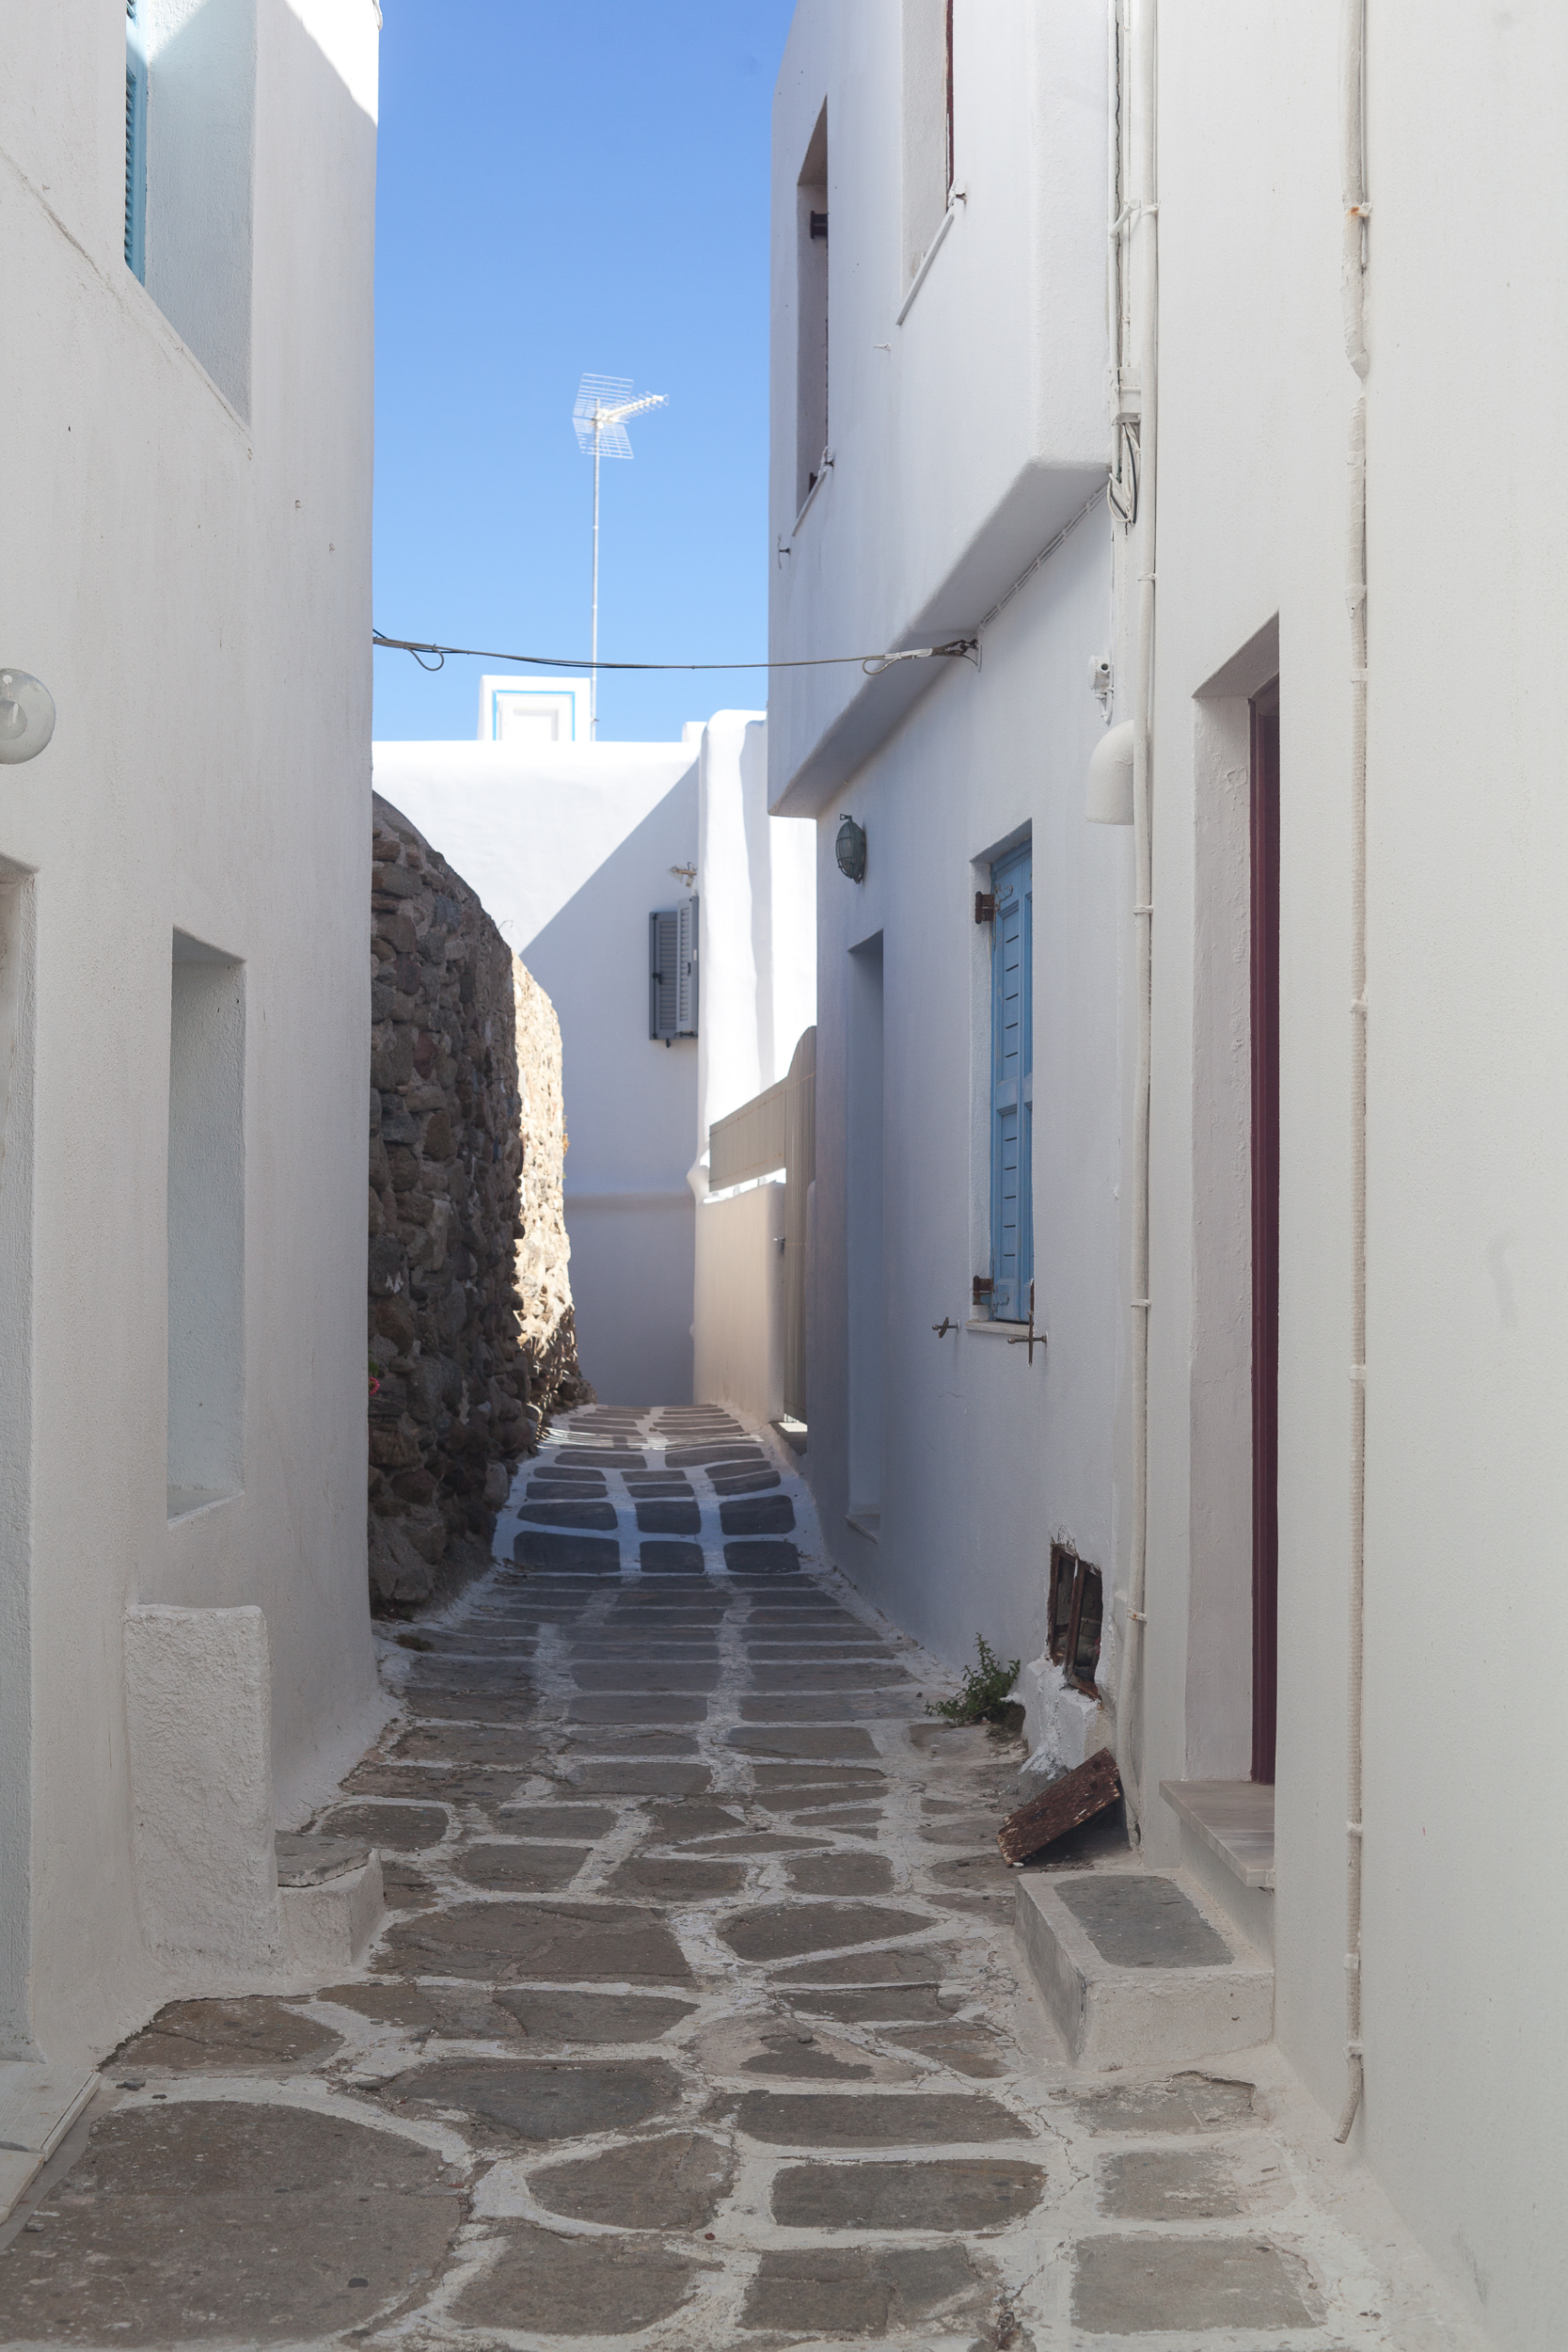 Chacon Images_Greece_Travel_WEB_-4860.jpg